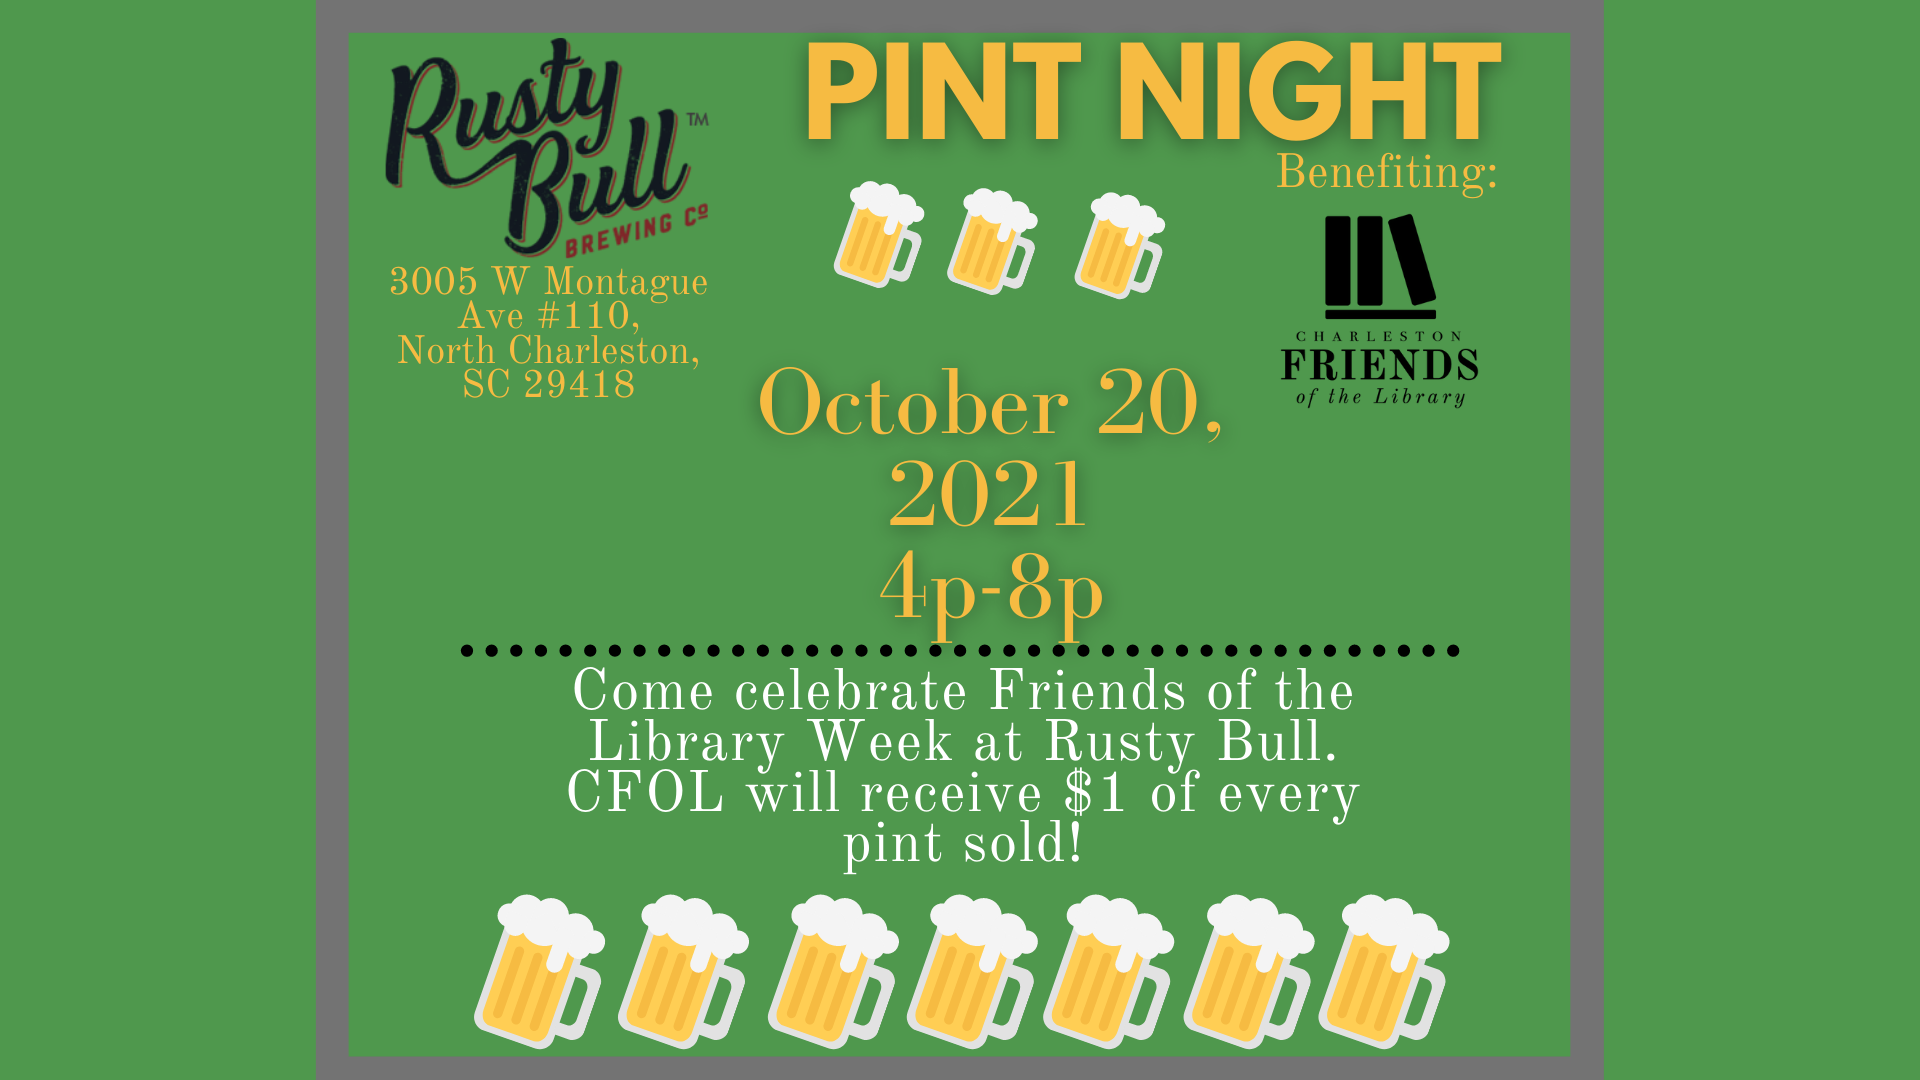 Friends of the Library Pint Night at Rusty Bull celebrating National Friends of the Library Week